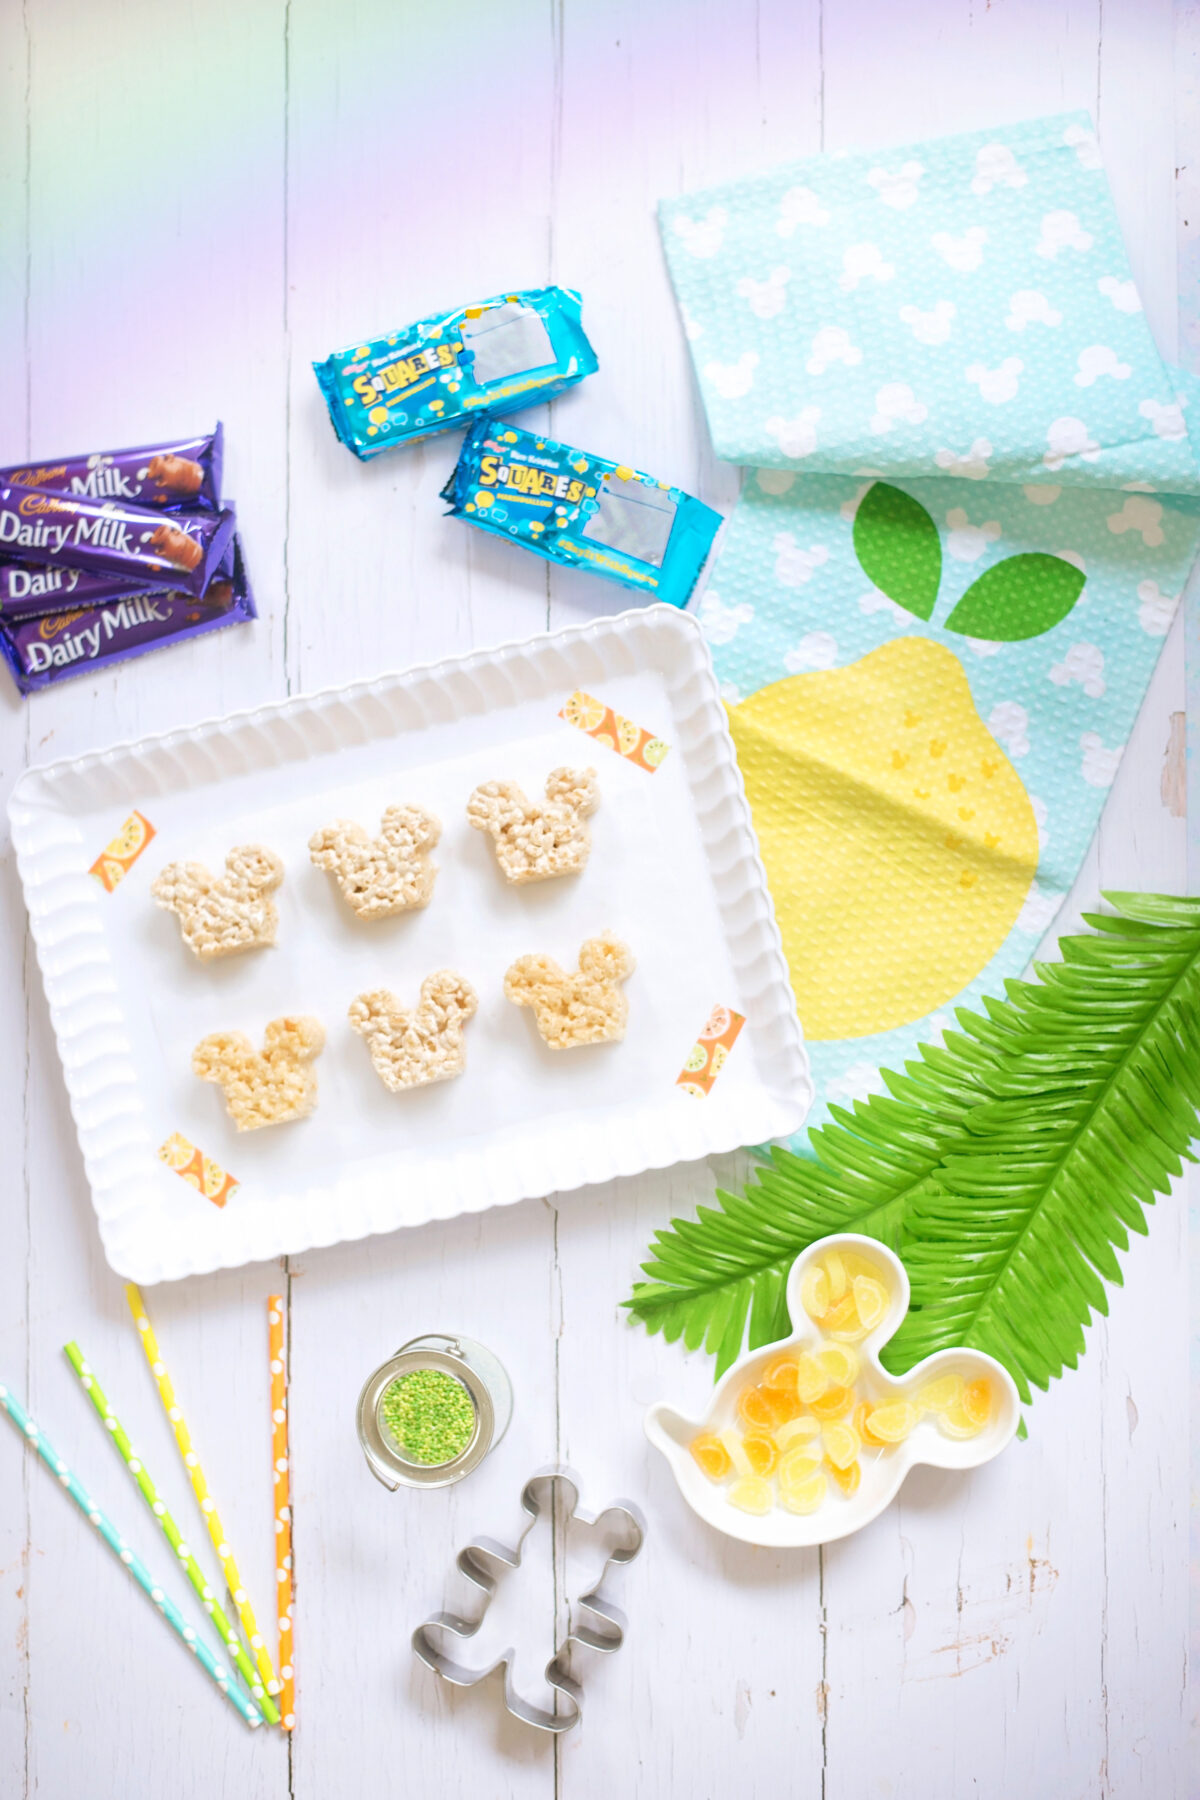 Image shows all of the ingredients needed to make the summer themed Disney's Mickey Mouse Rice Krispie Treats. Dairy Milk chocolate bars, rice krispie squares, green sprinkles, orange and lemon slices.  They are laid ona white wooden backdrop with a Mickey Mouse lemon tea towel and a white scalloped tray, with a Mickey Mouse cookie cutter and coloured spotted paper straws.